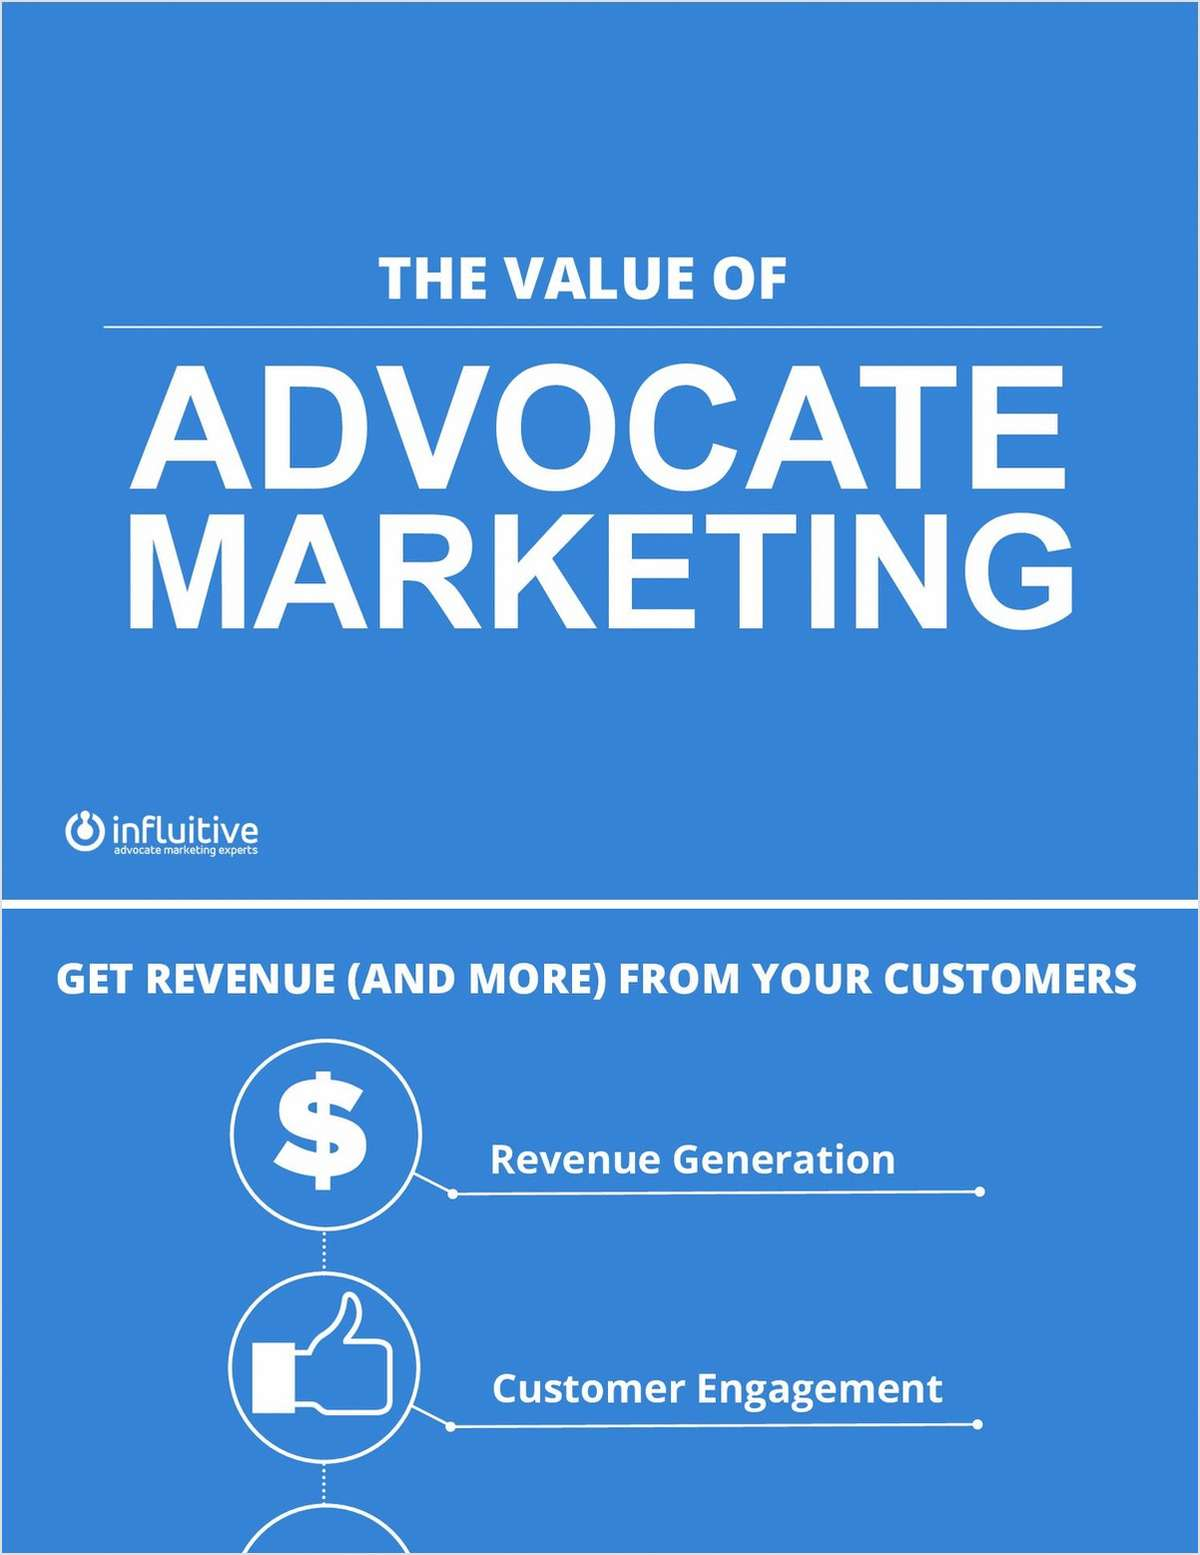 Measuring the Value of Advocate Marketing